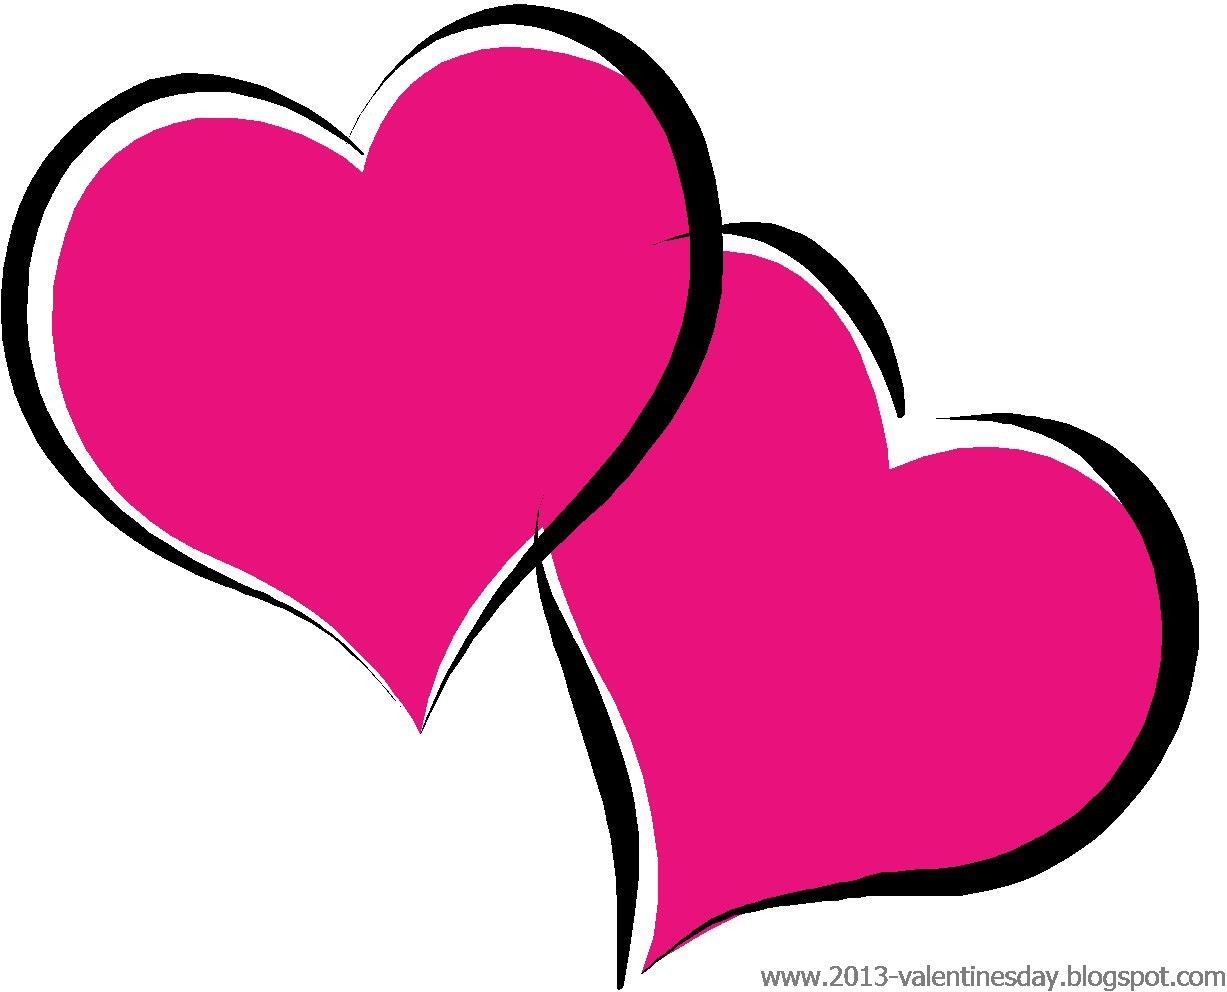 Hearts clipart school. Cute heart at getdrawings